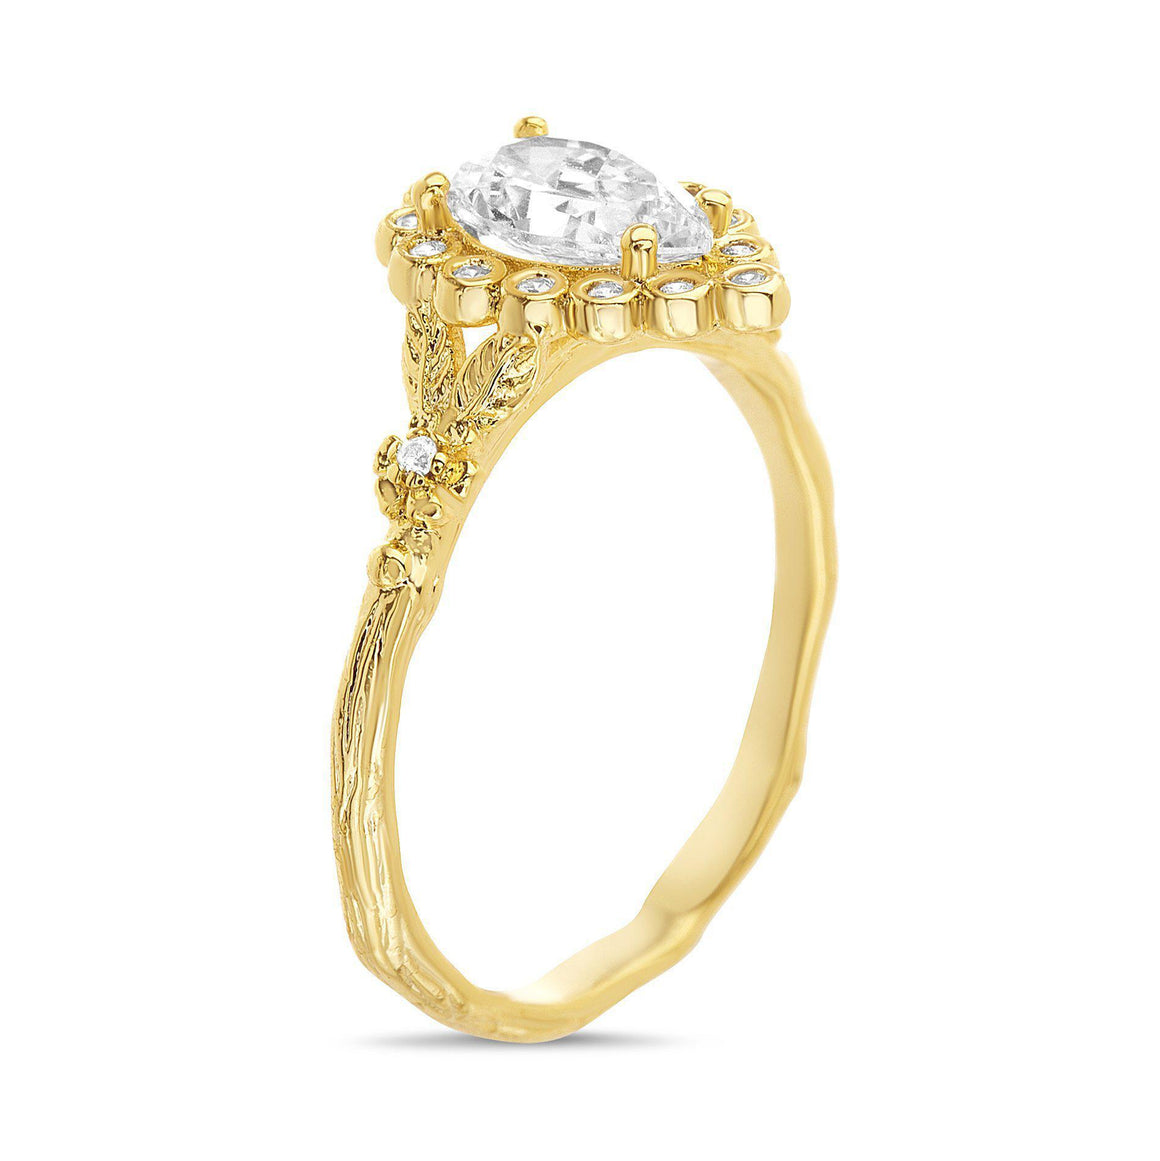 GOLD TEARDROP CZ CENTER W/ CZ BORDER FLORAL DESIGN WAVY BAND RING - Atlanta Jewelers Supply